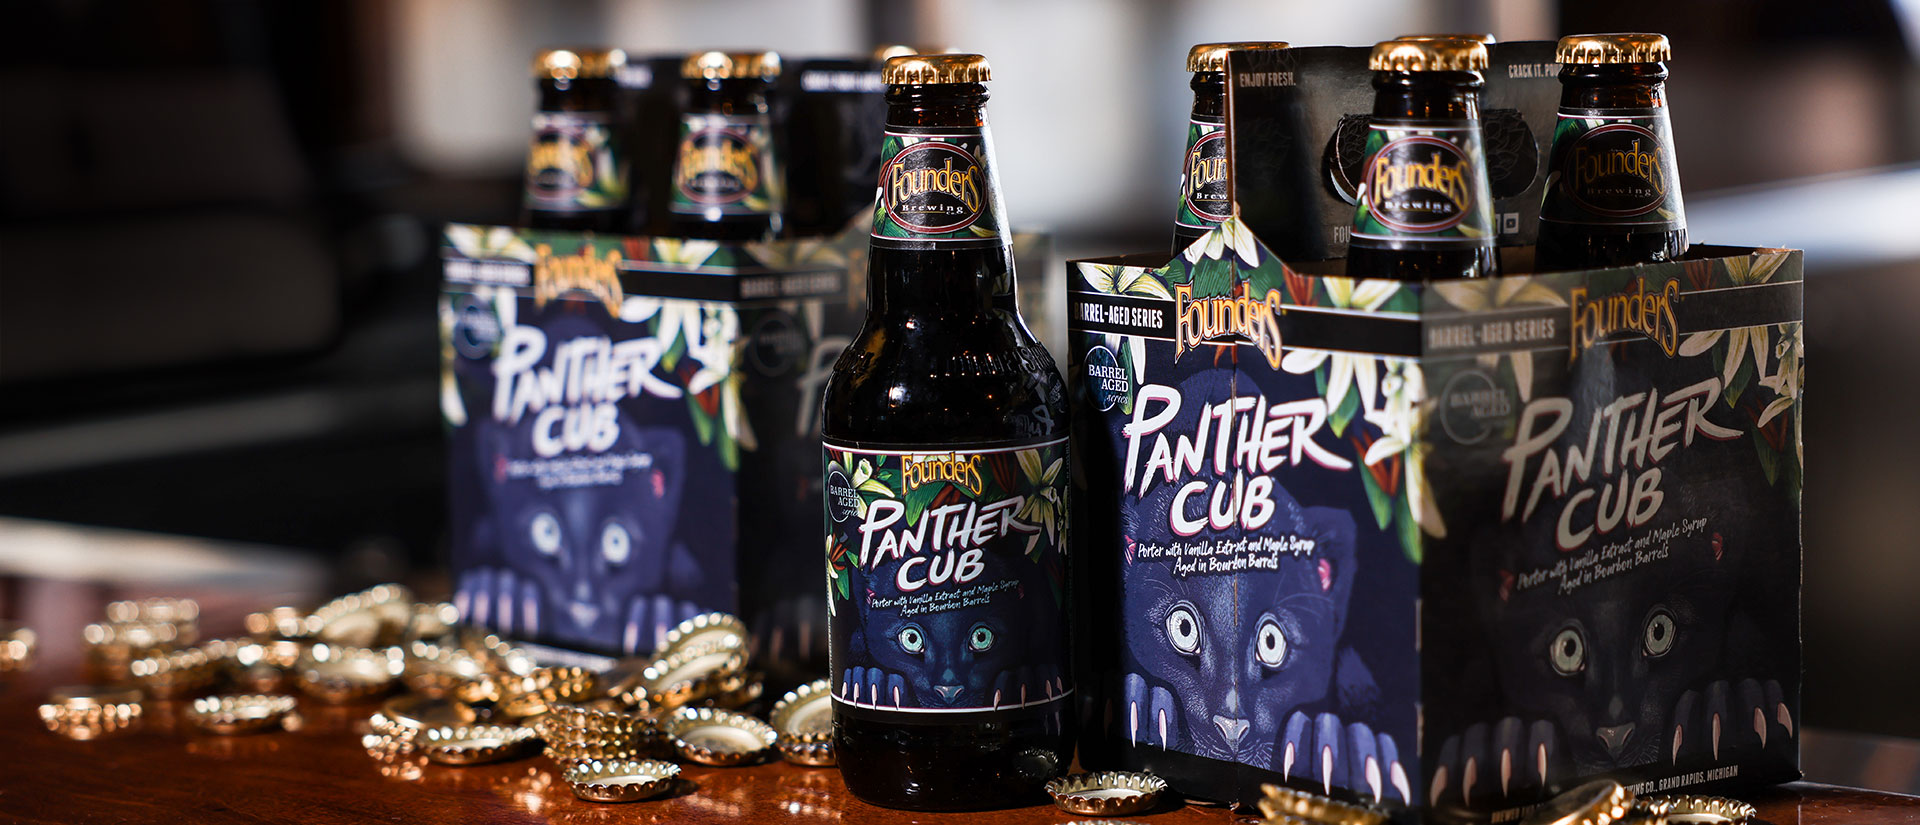 Panther Cub 12oz bottle and 4-packs with scattered gold bottle caps